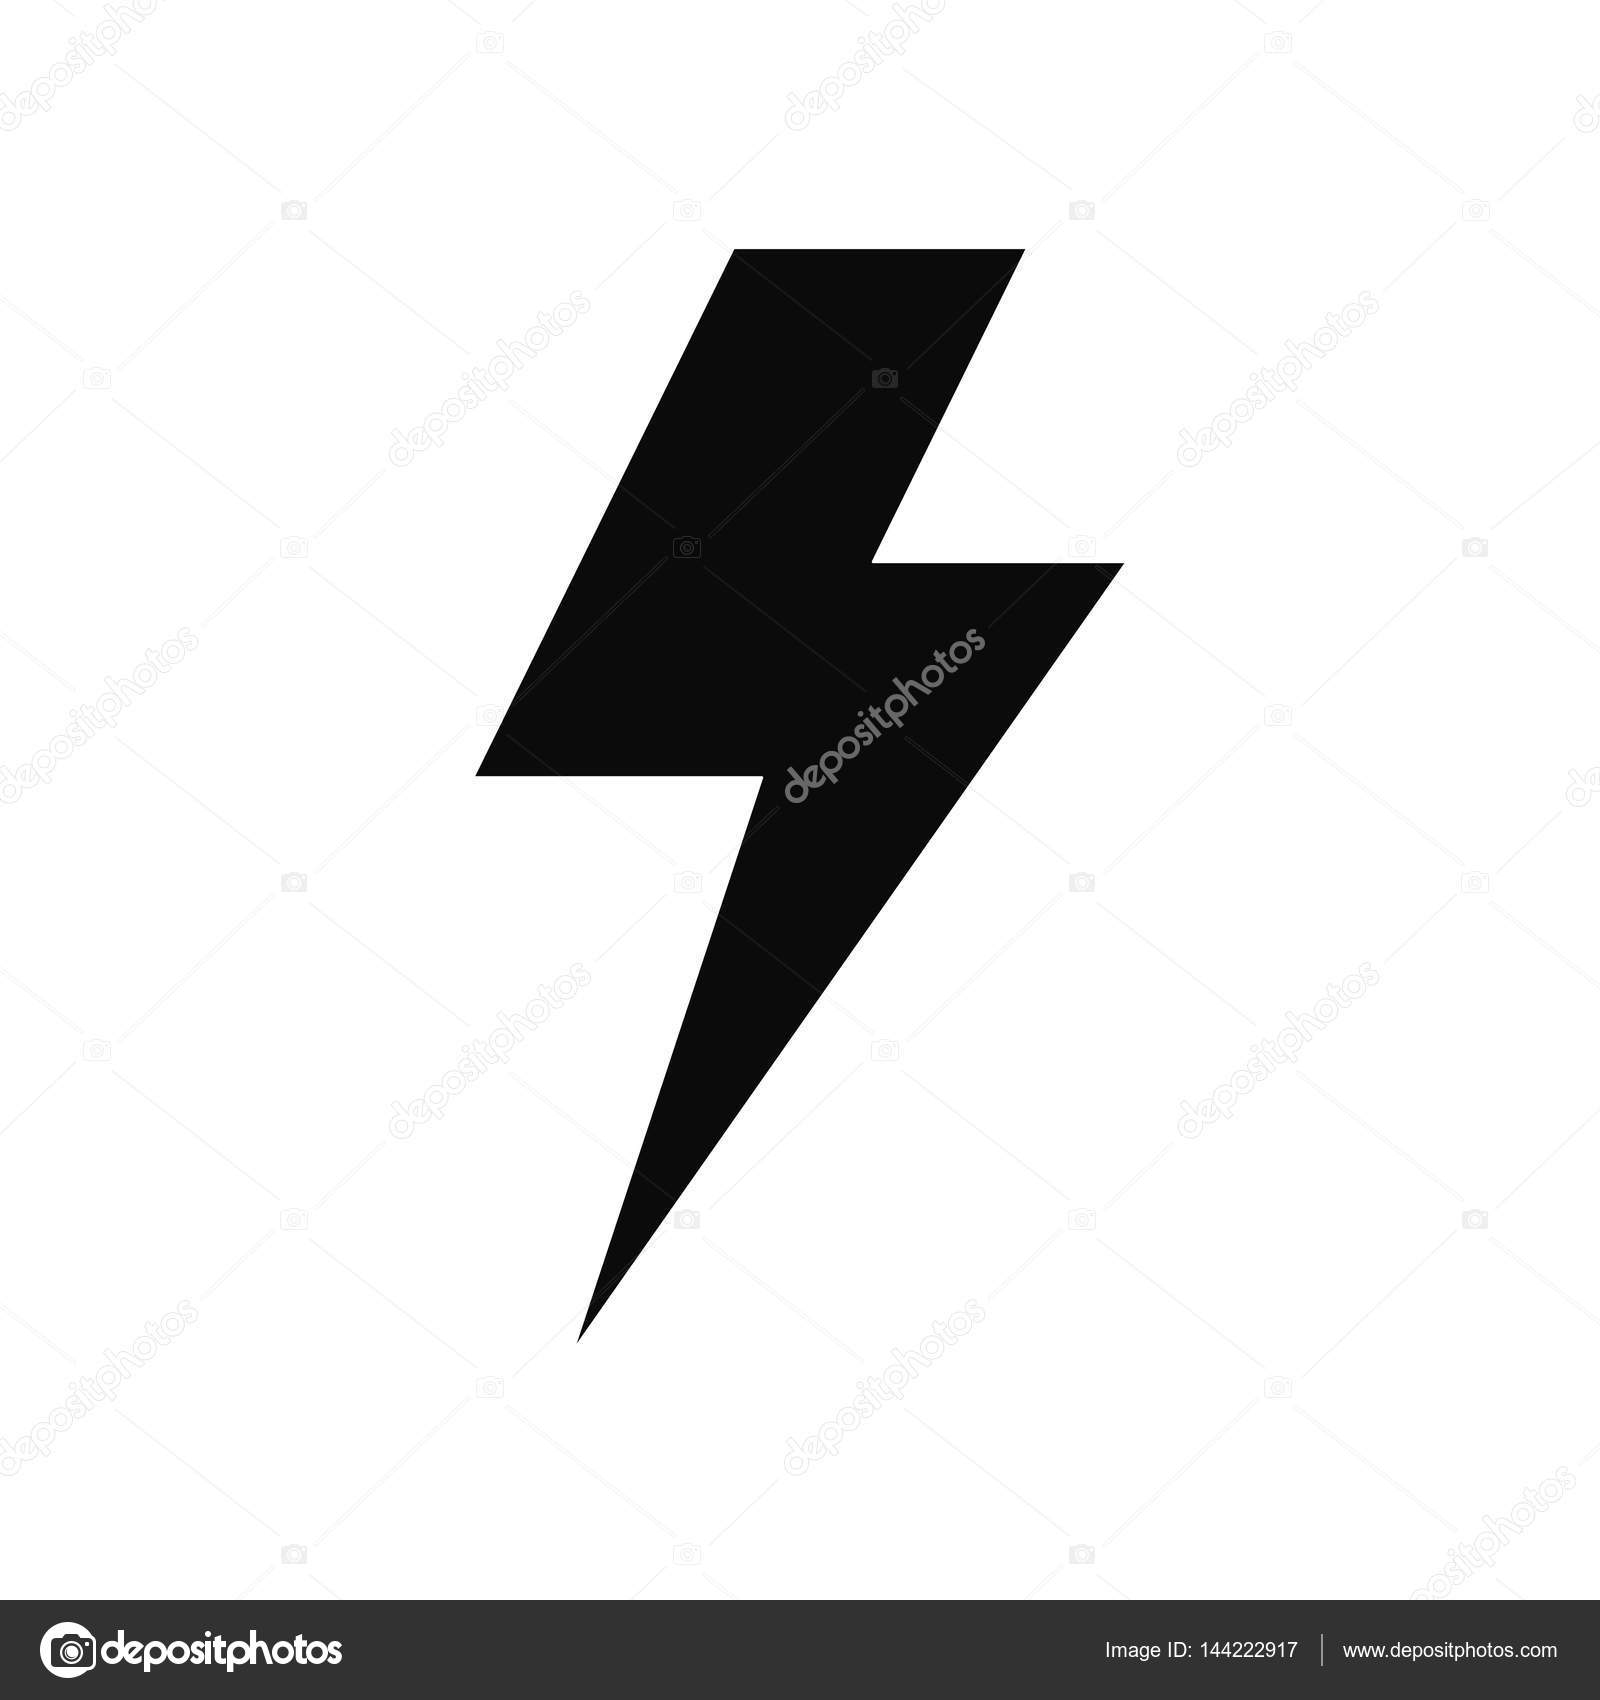 Ray electricity symbol — Stock Vector © djv #144222917